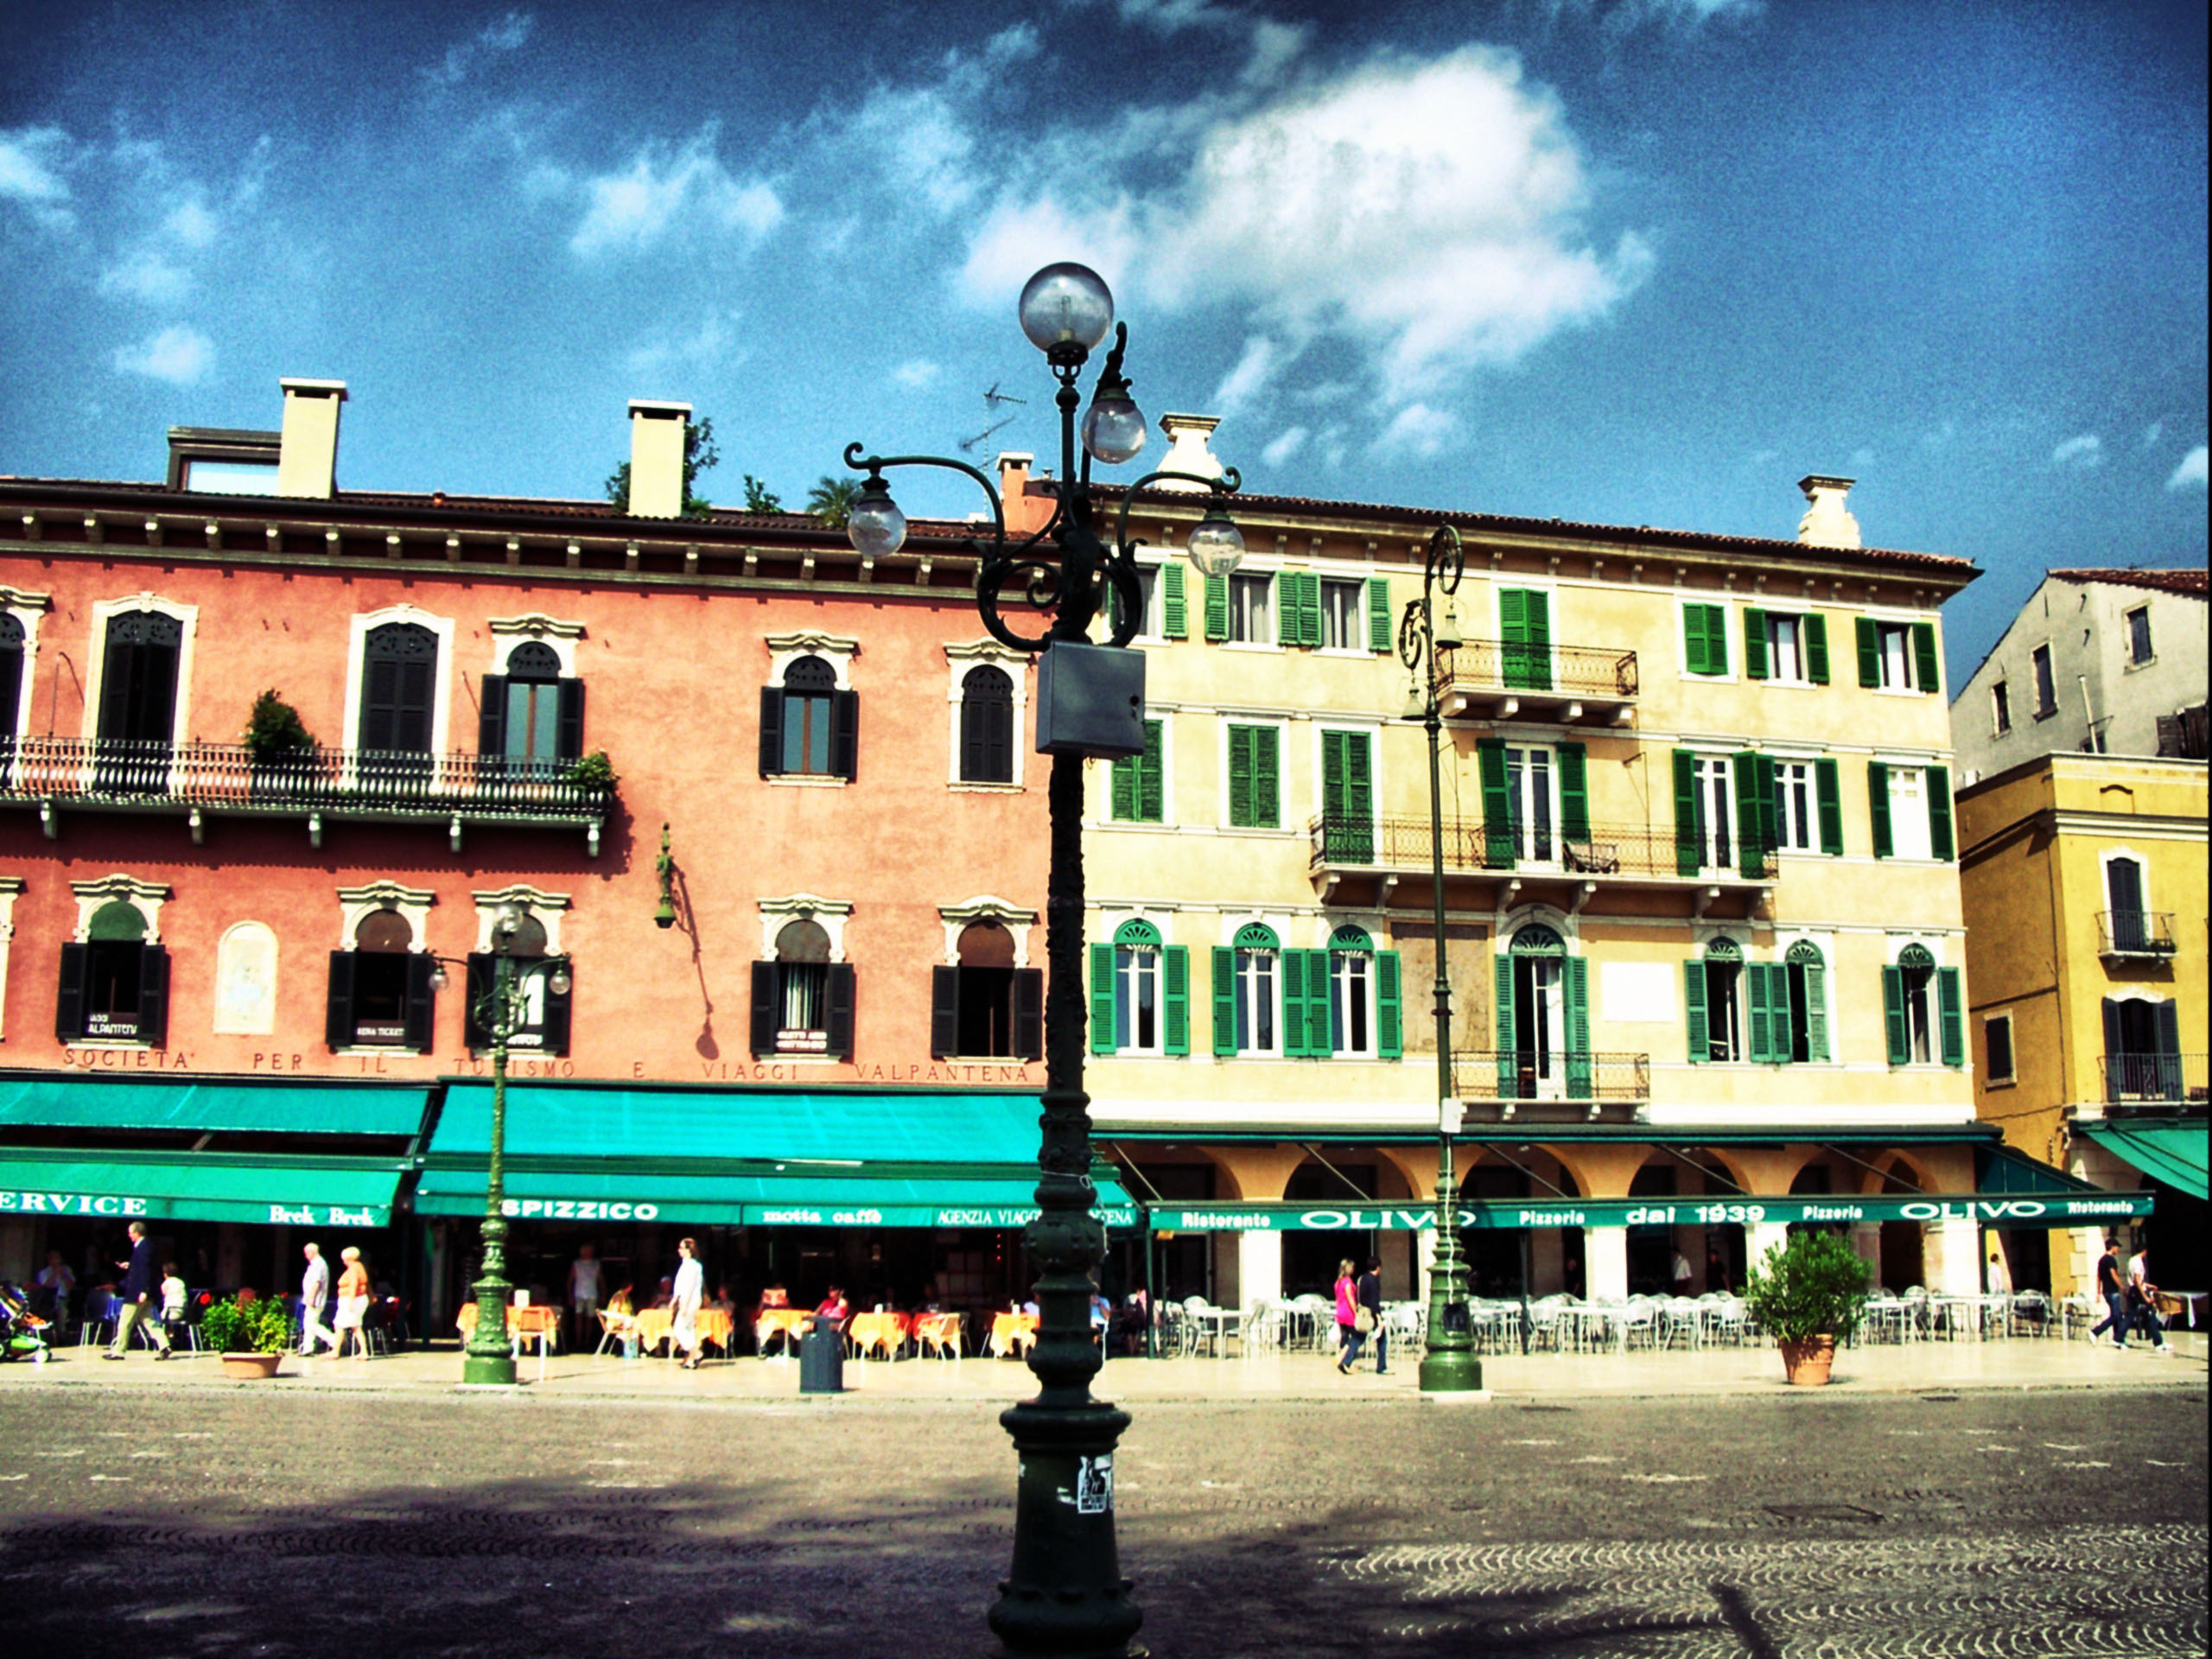 Piazza Brà - 5 Great Things to Do and See in Verona, Italy